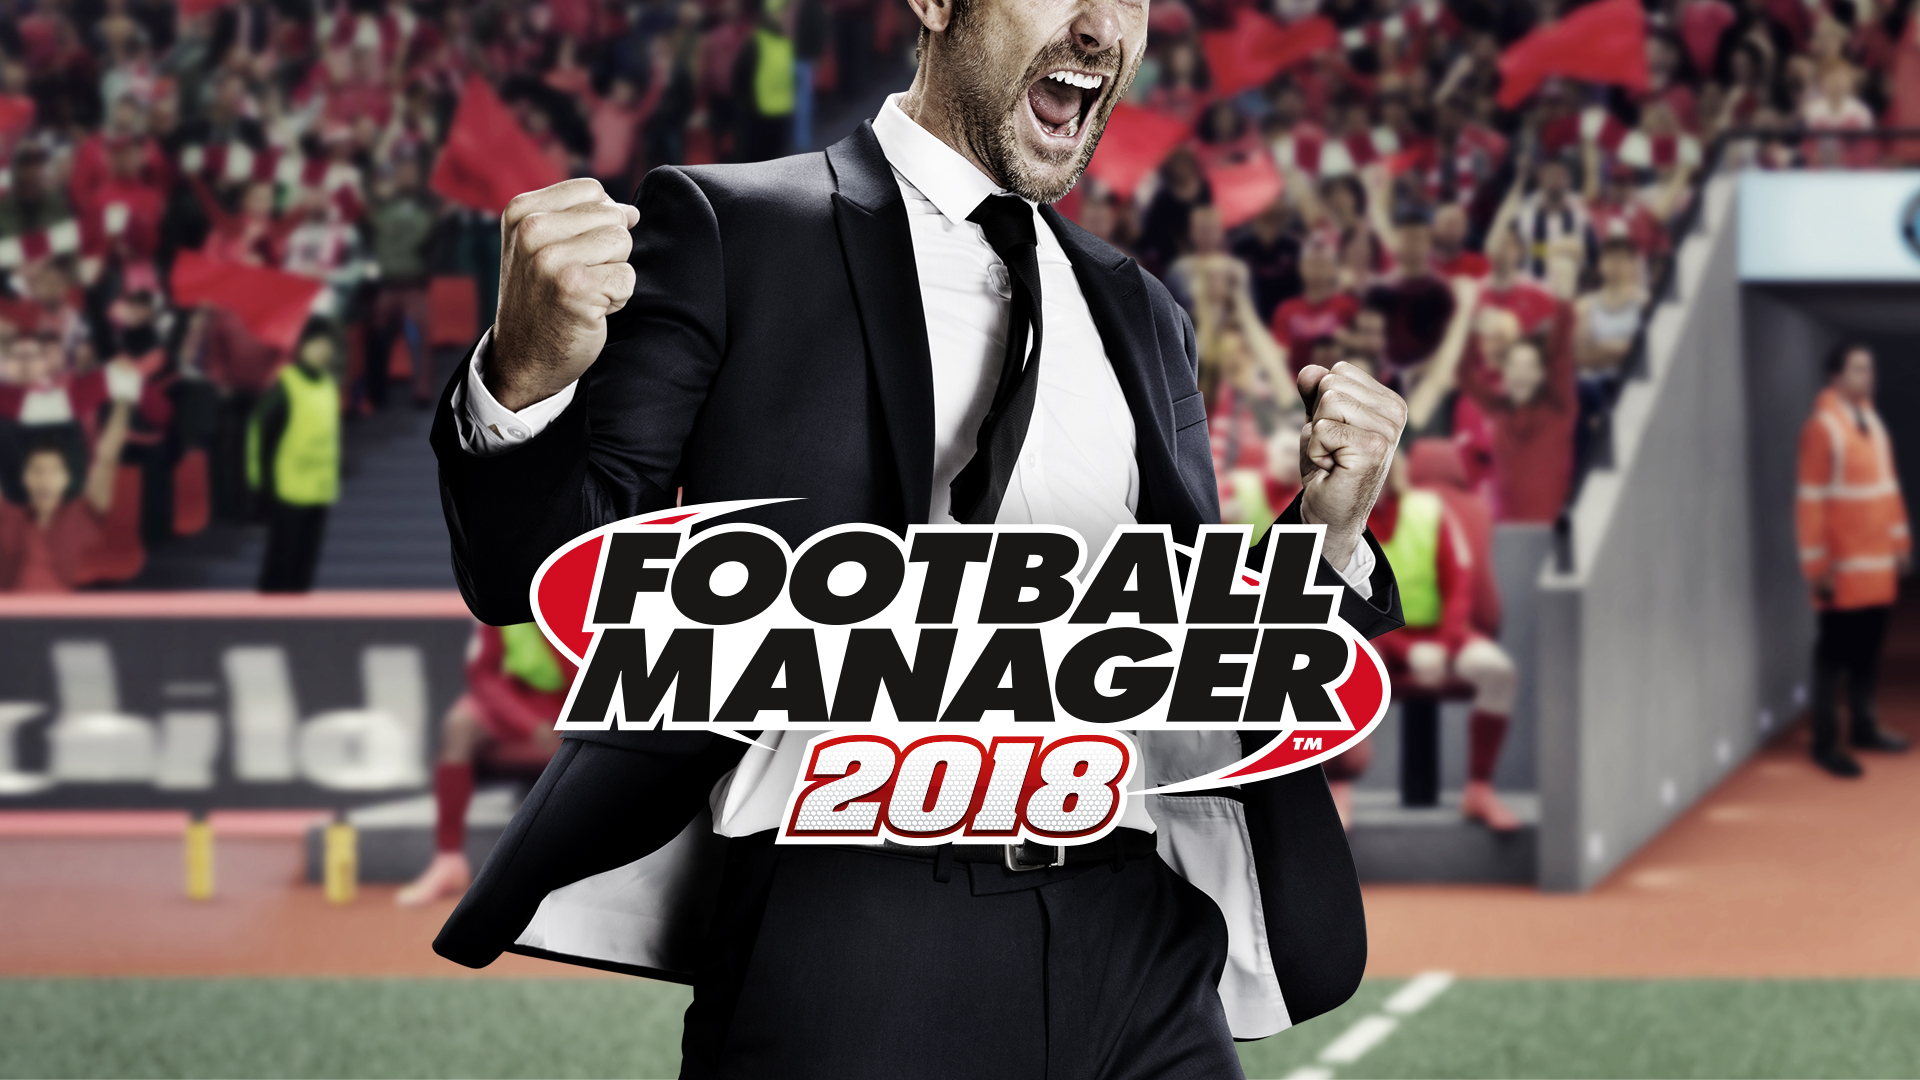 Football Manager 2018 Masthead